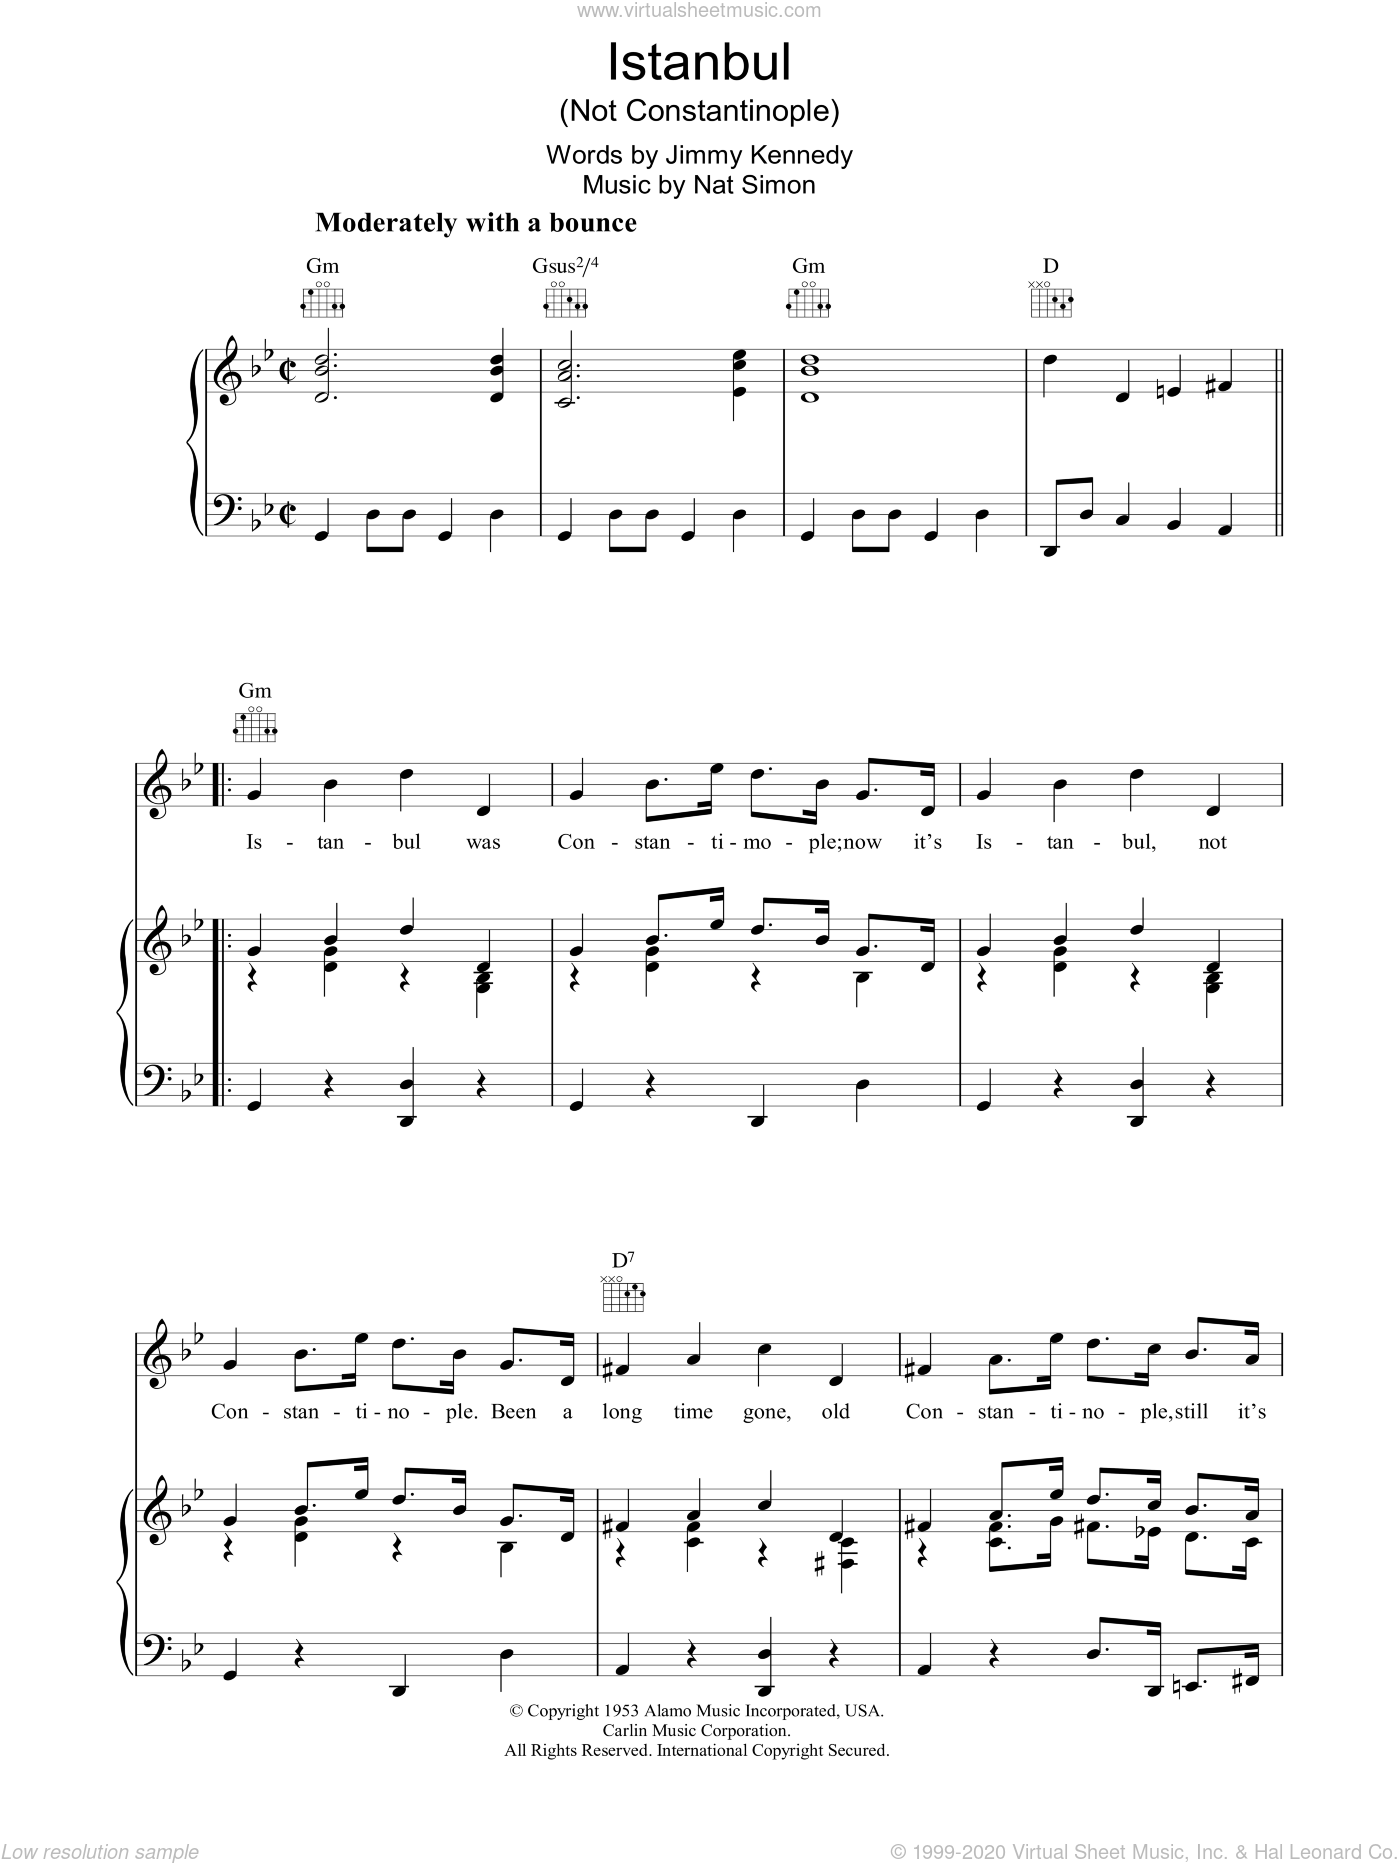 Istanbul (Not Constantinople) sheet music for voice, piano or guitar by They Might Be Giants, Frankie Vaughan, Jimmy Kennedy and Nat Simon, intermediate skill level